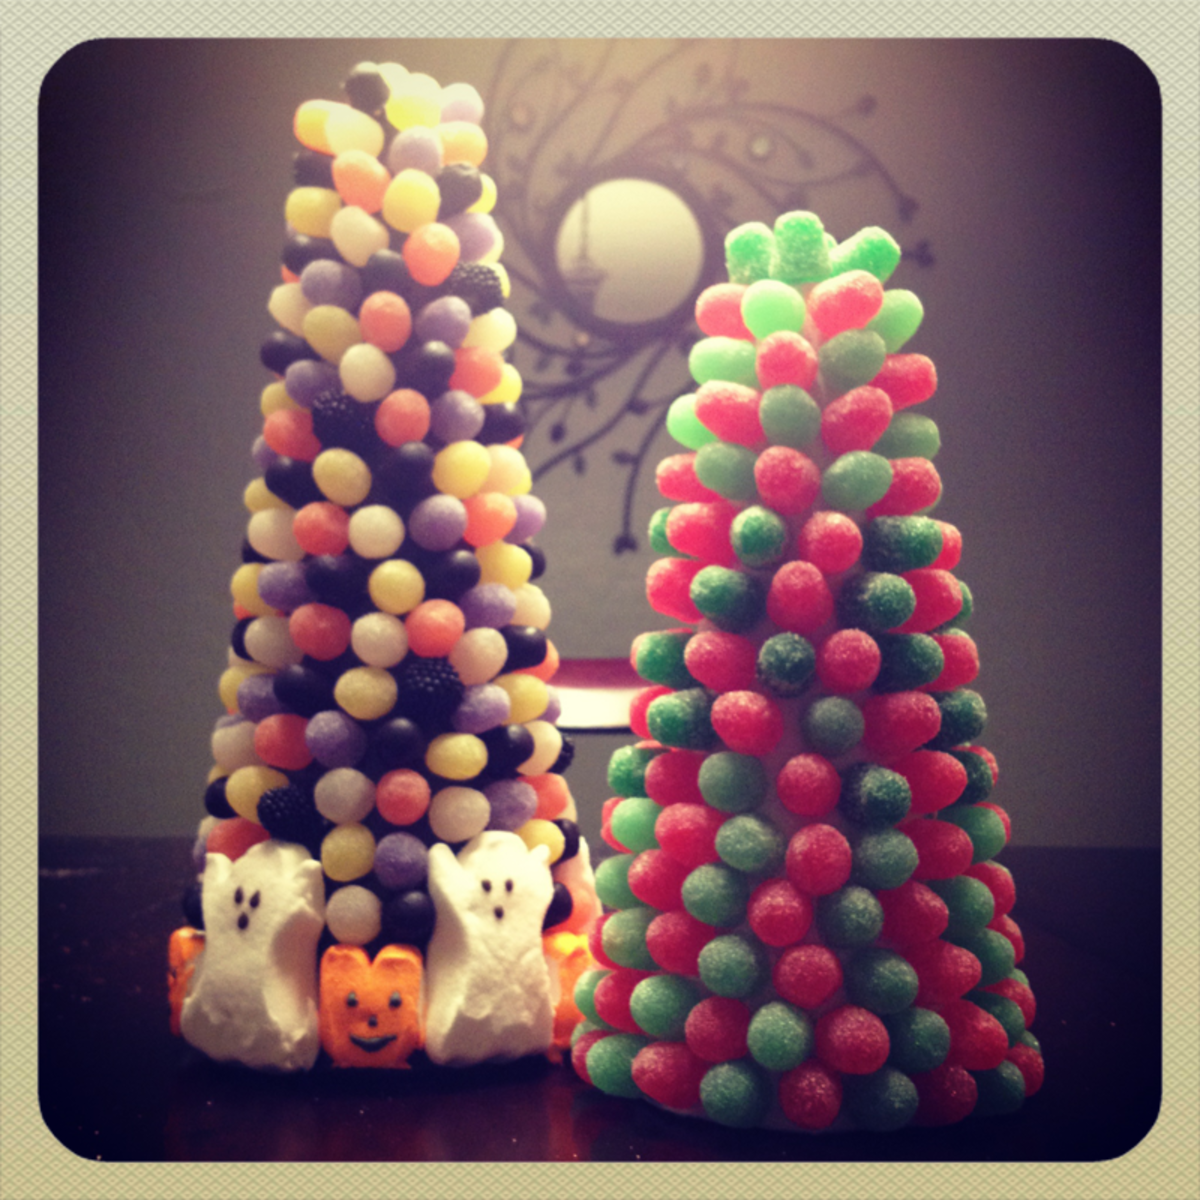 Gumdrop Trees: A Sweet Holiday Craft Using Candy